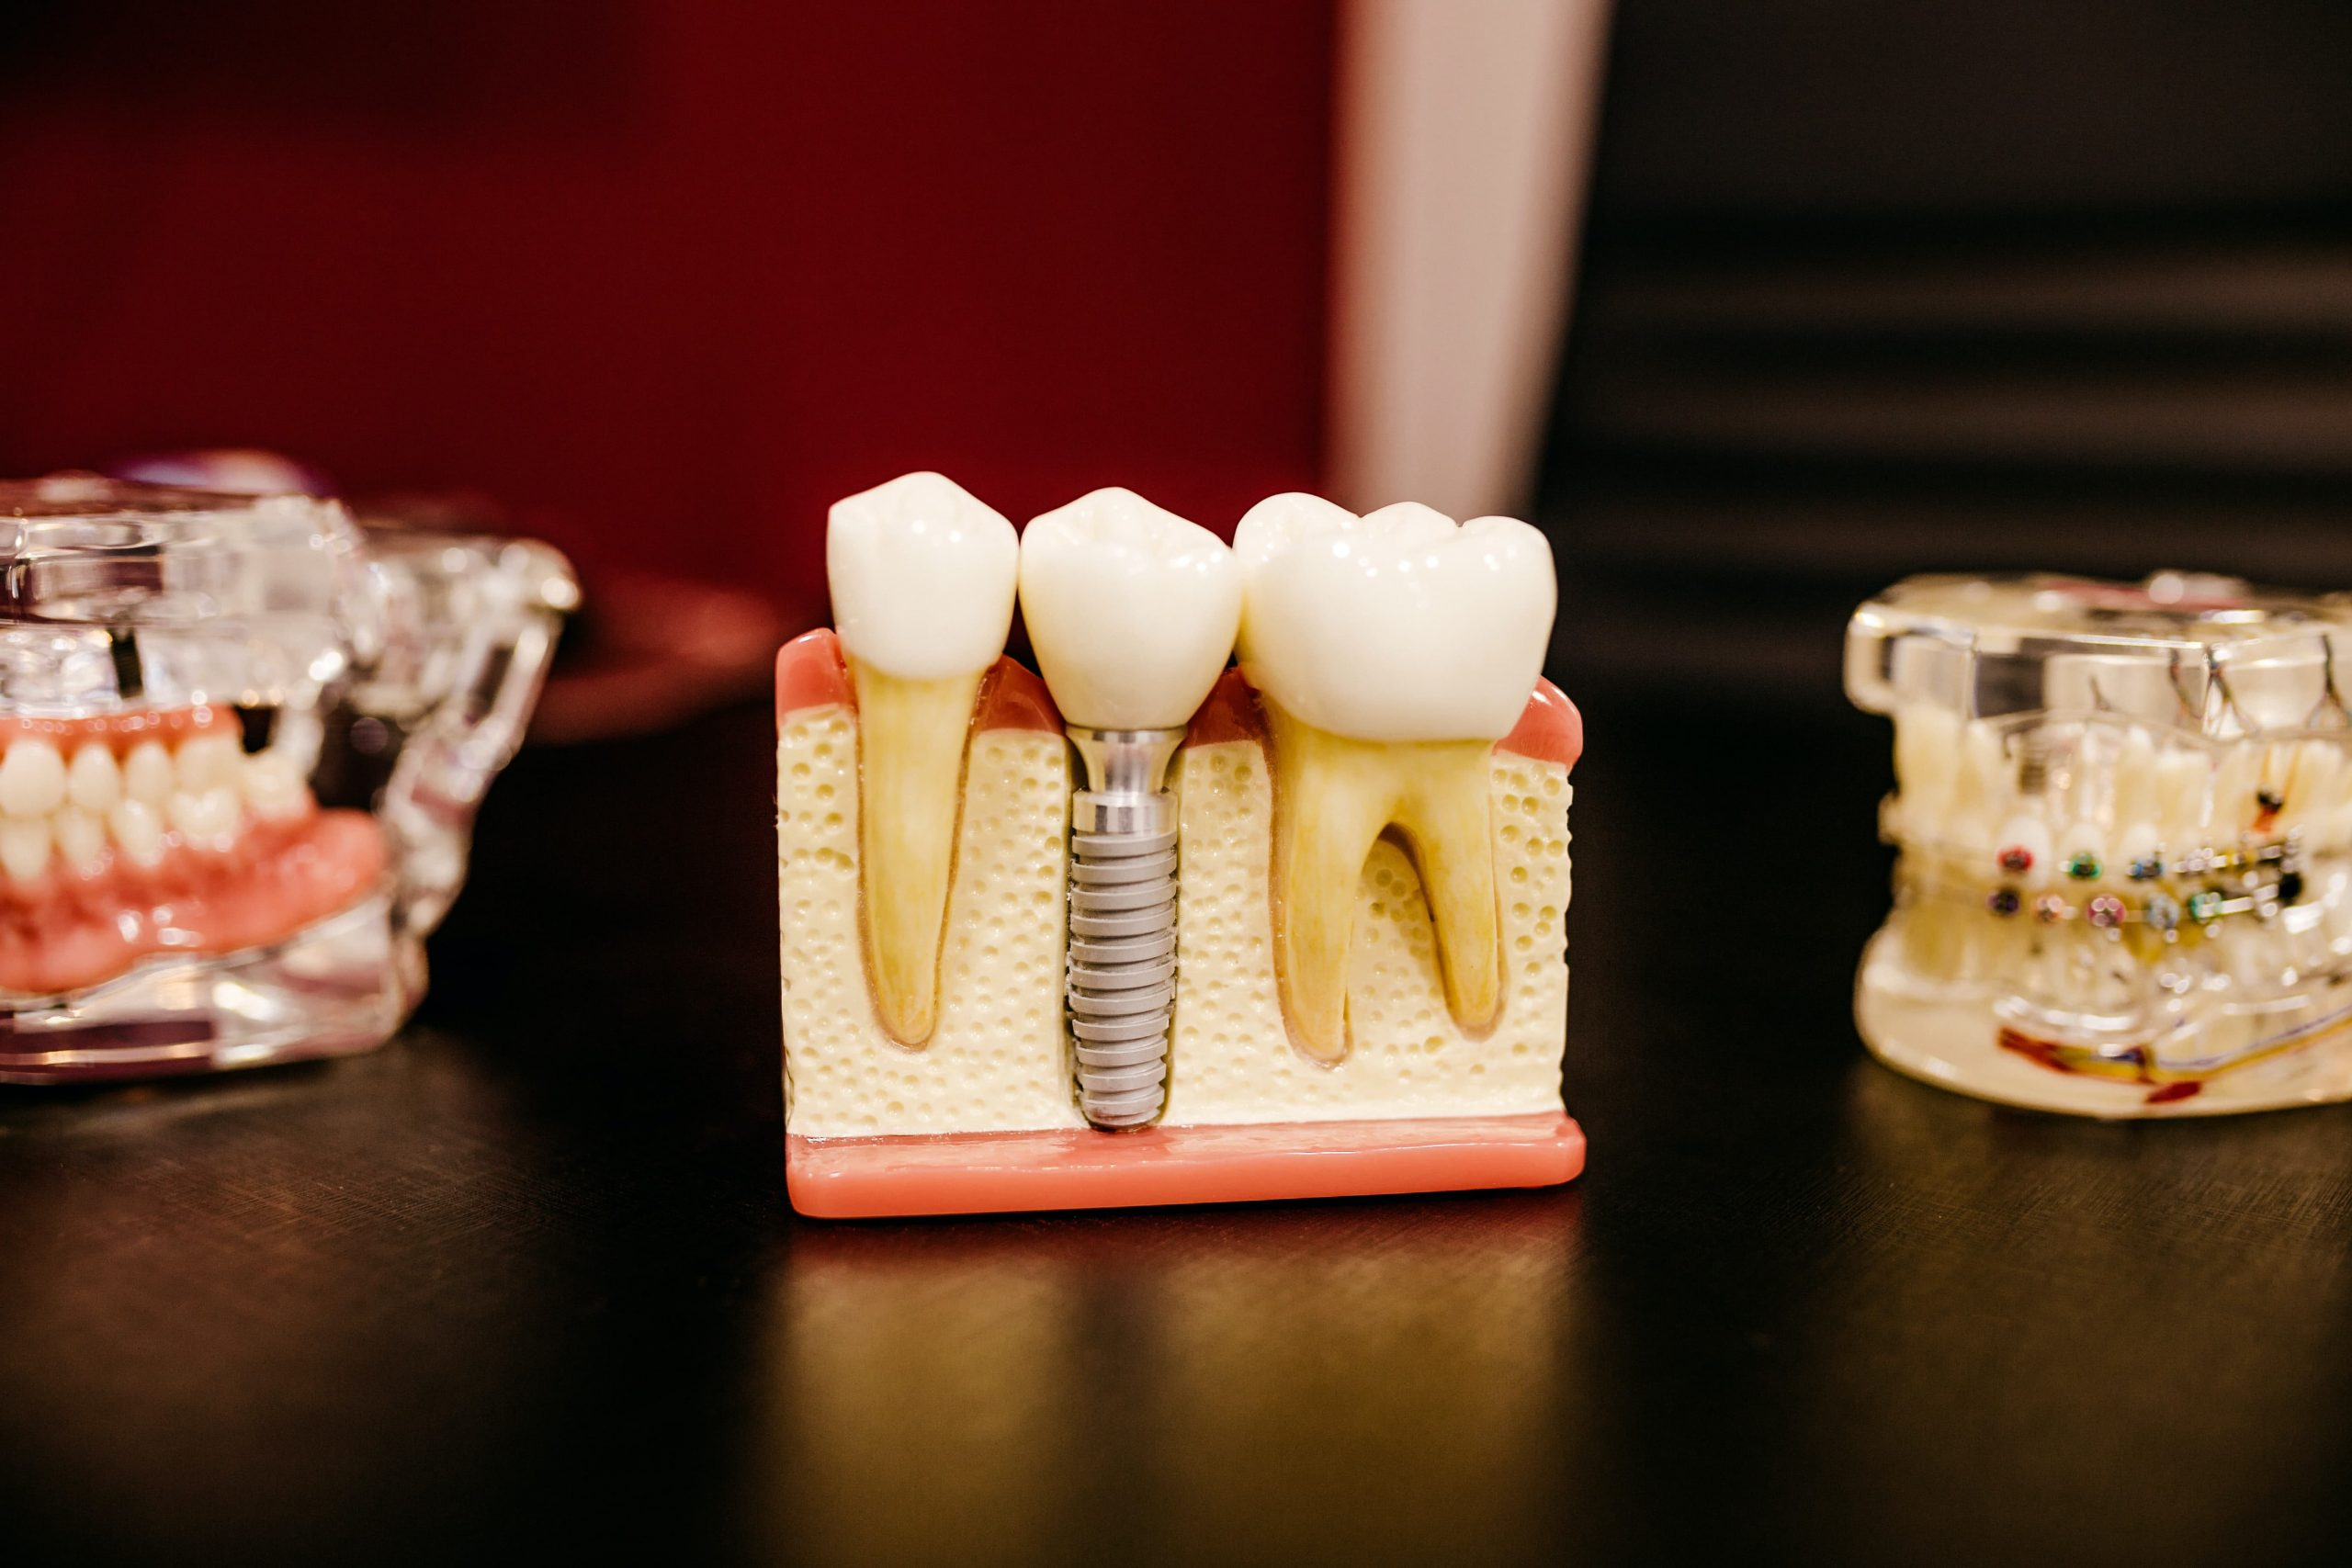 Dentist Digest Monthly: Crowns vs Tooth Implants